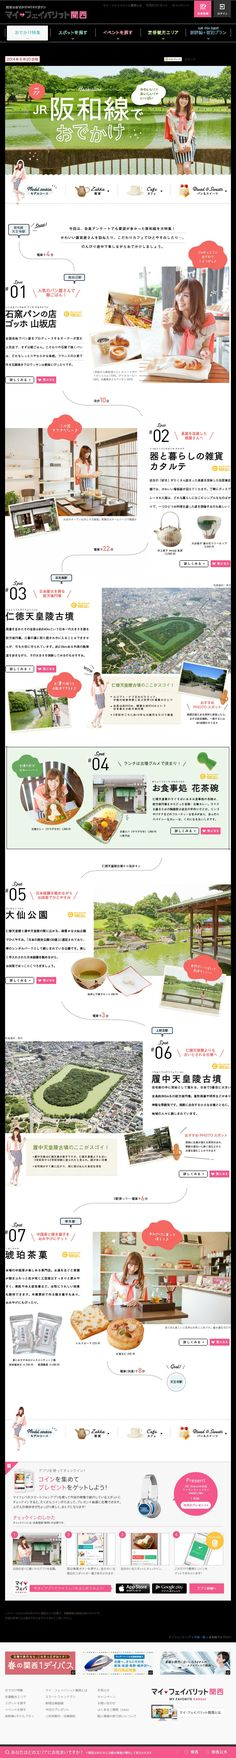 The website 'http://www.my-fav.jp/feature/77/' courtesy of @Pinstamatic (http://pinstamatic.com)